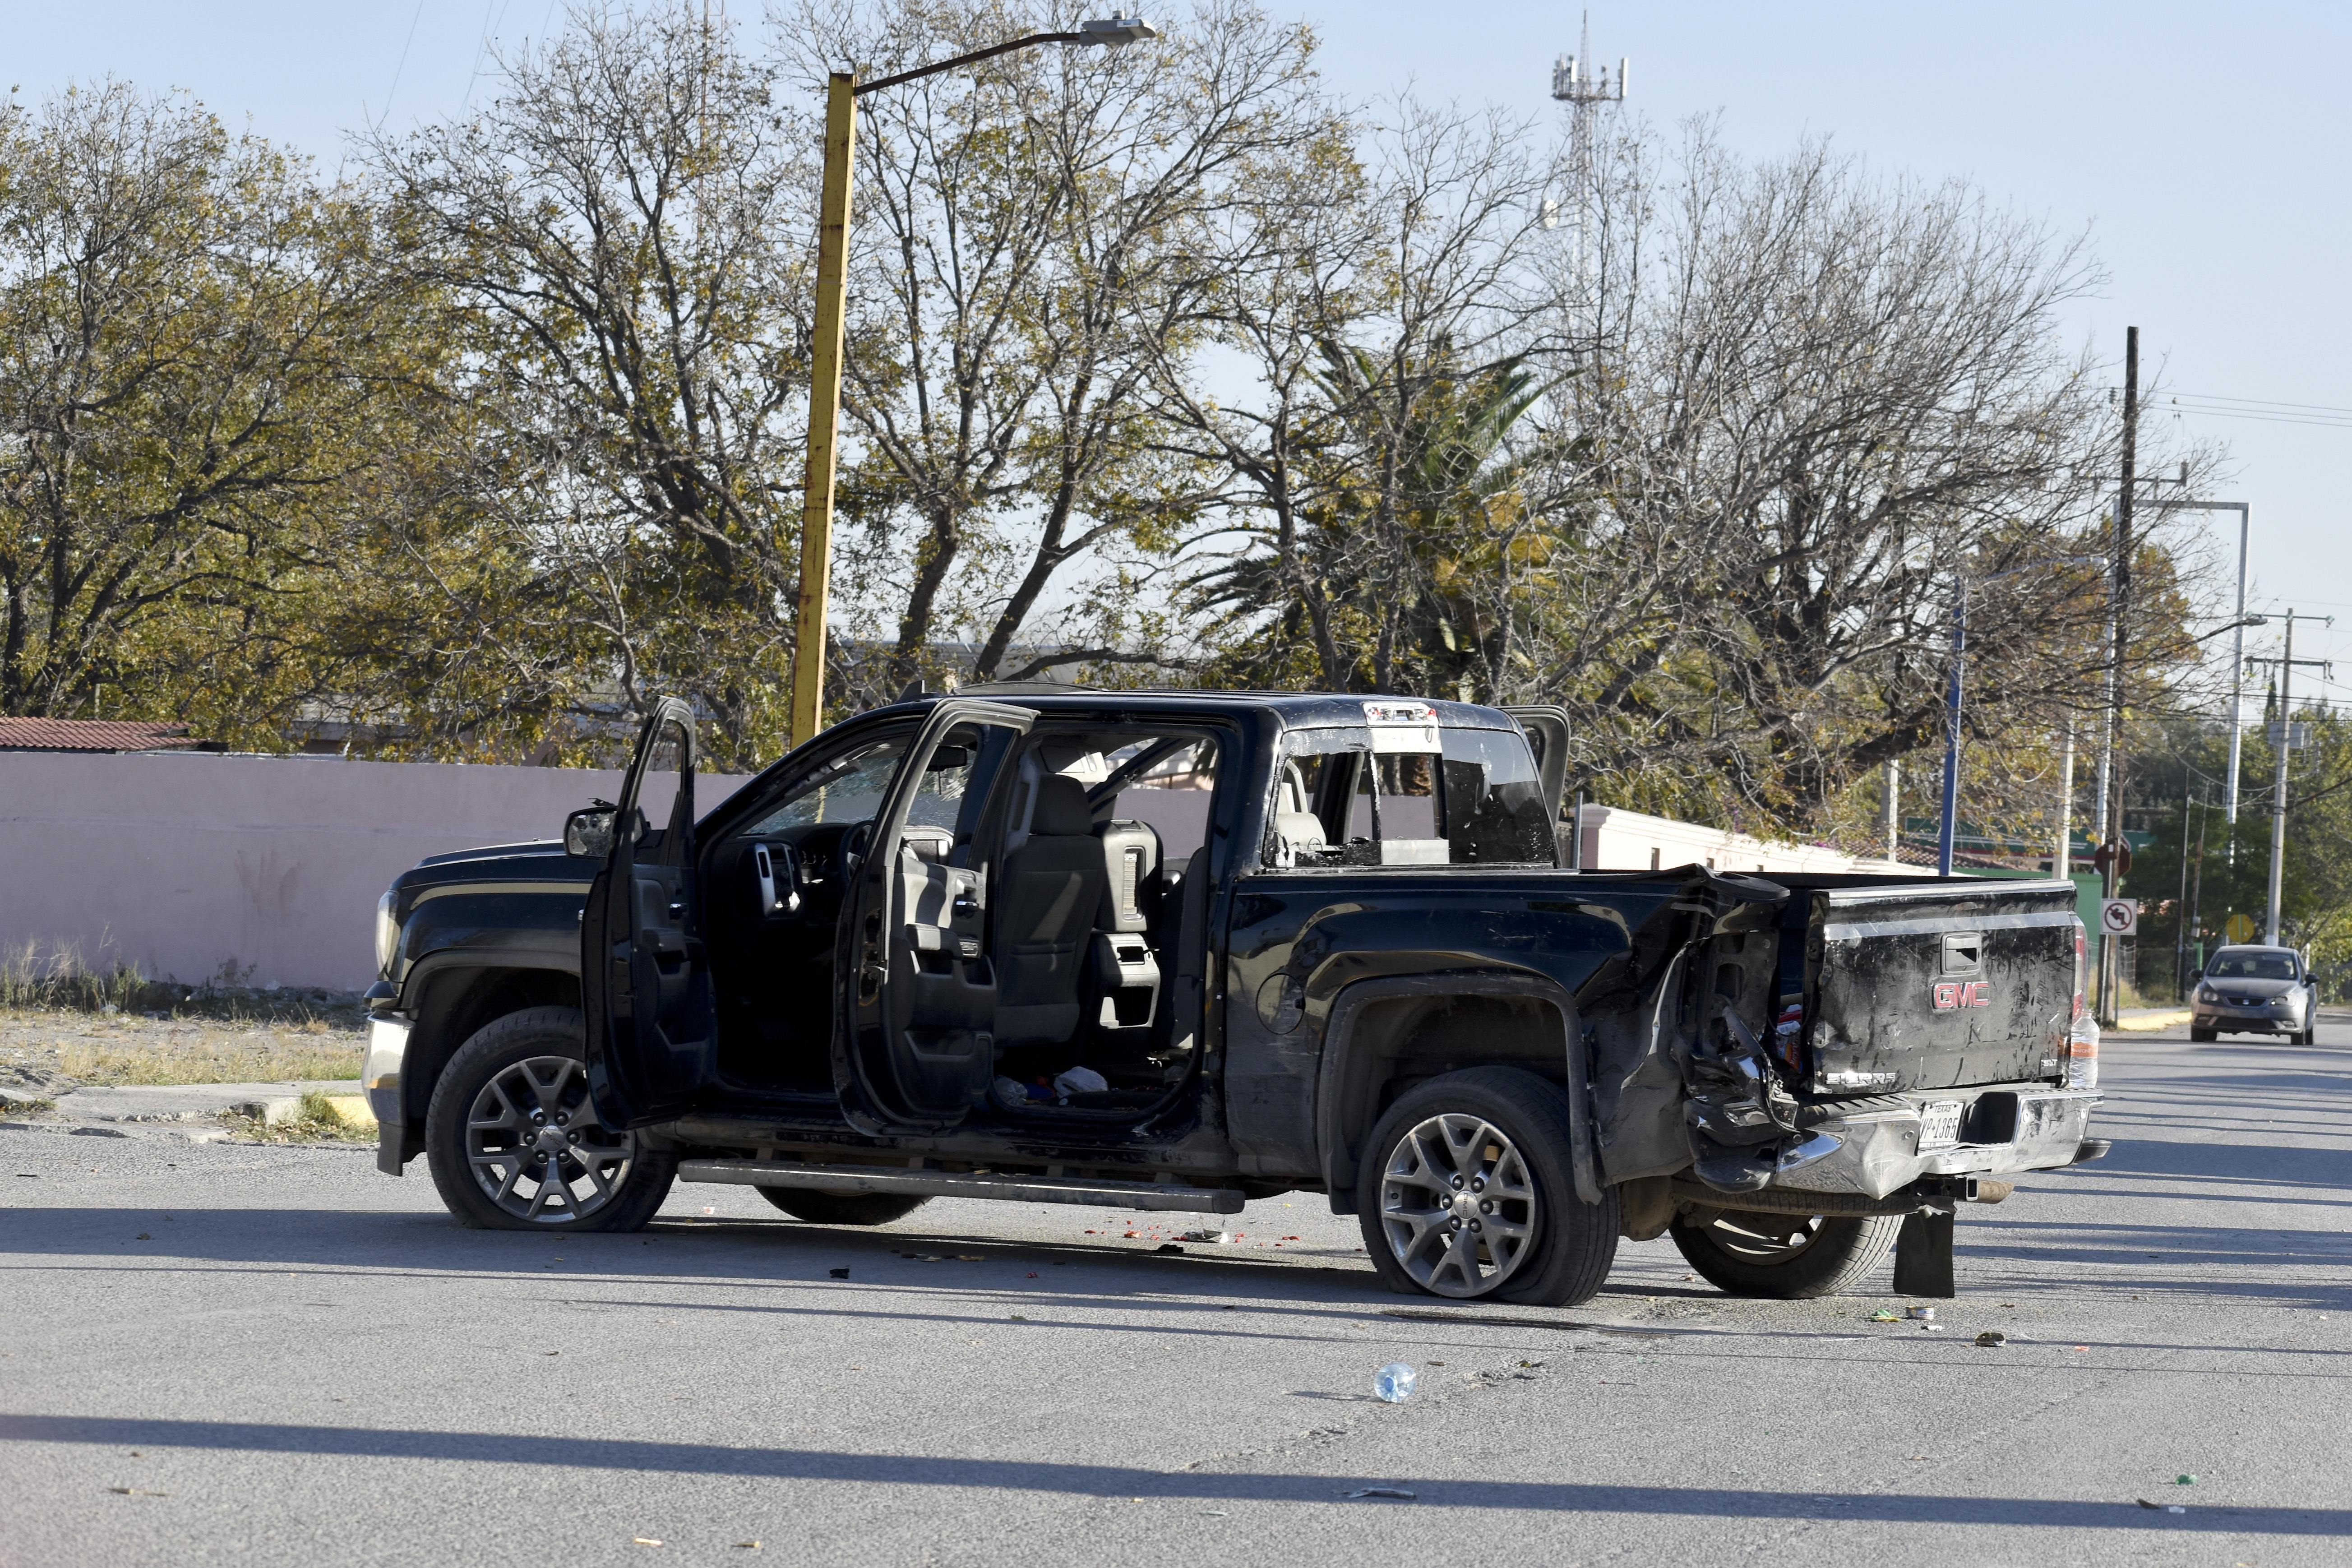 A damaged pick up is on the streets after a gun battle between Mexican security forces and suspected cartel gunmen, in Villa Union, Mexico, on Nov. 30, 2019.